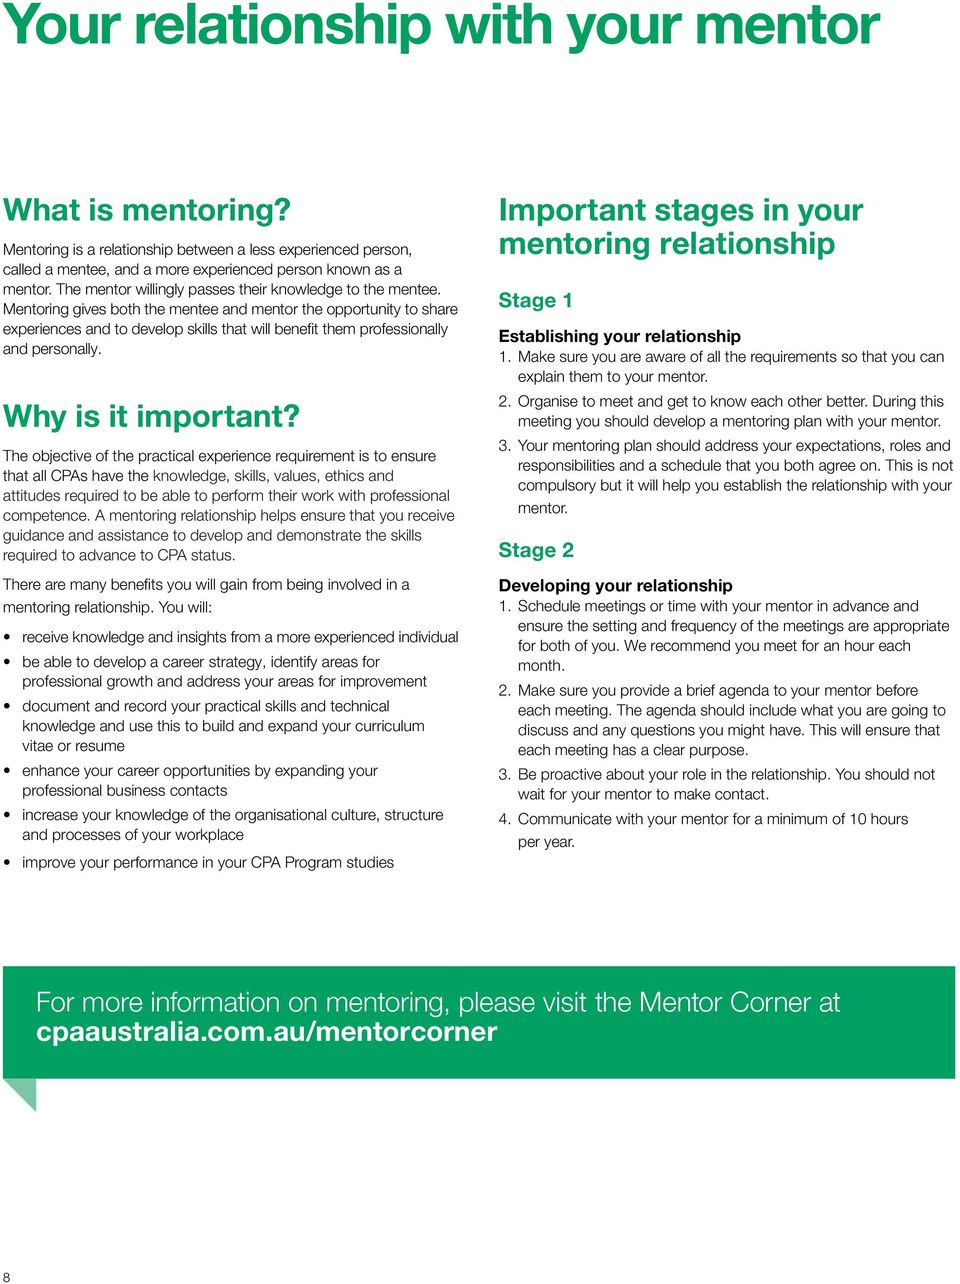 Mentoring gives both the mentee and mentor the opportunity to share experiences and to develop skills that will benefit them professionally and personally. Why is it important?